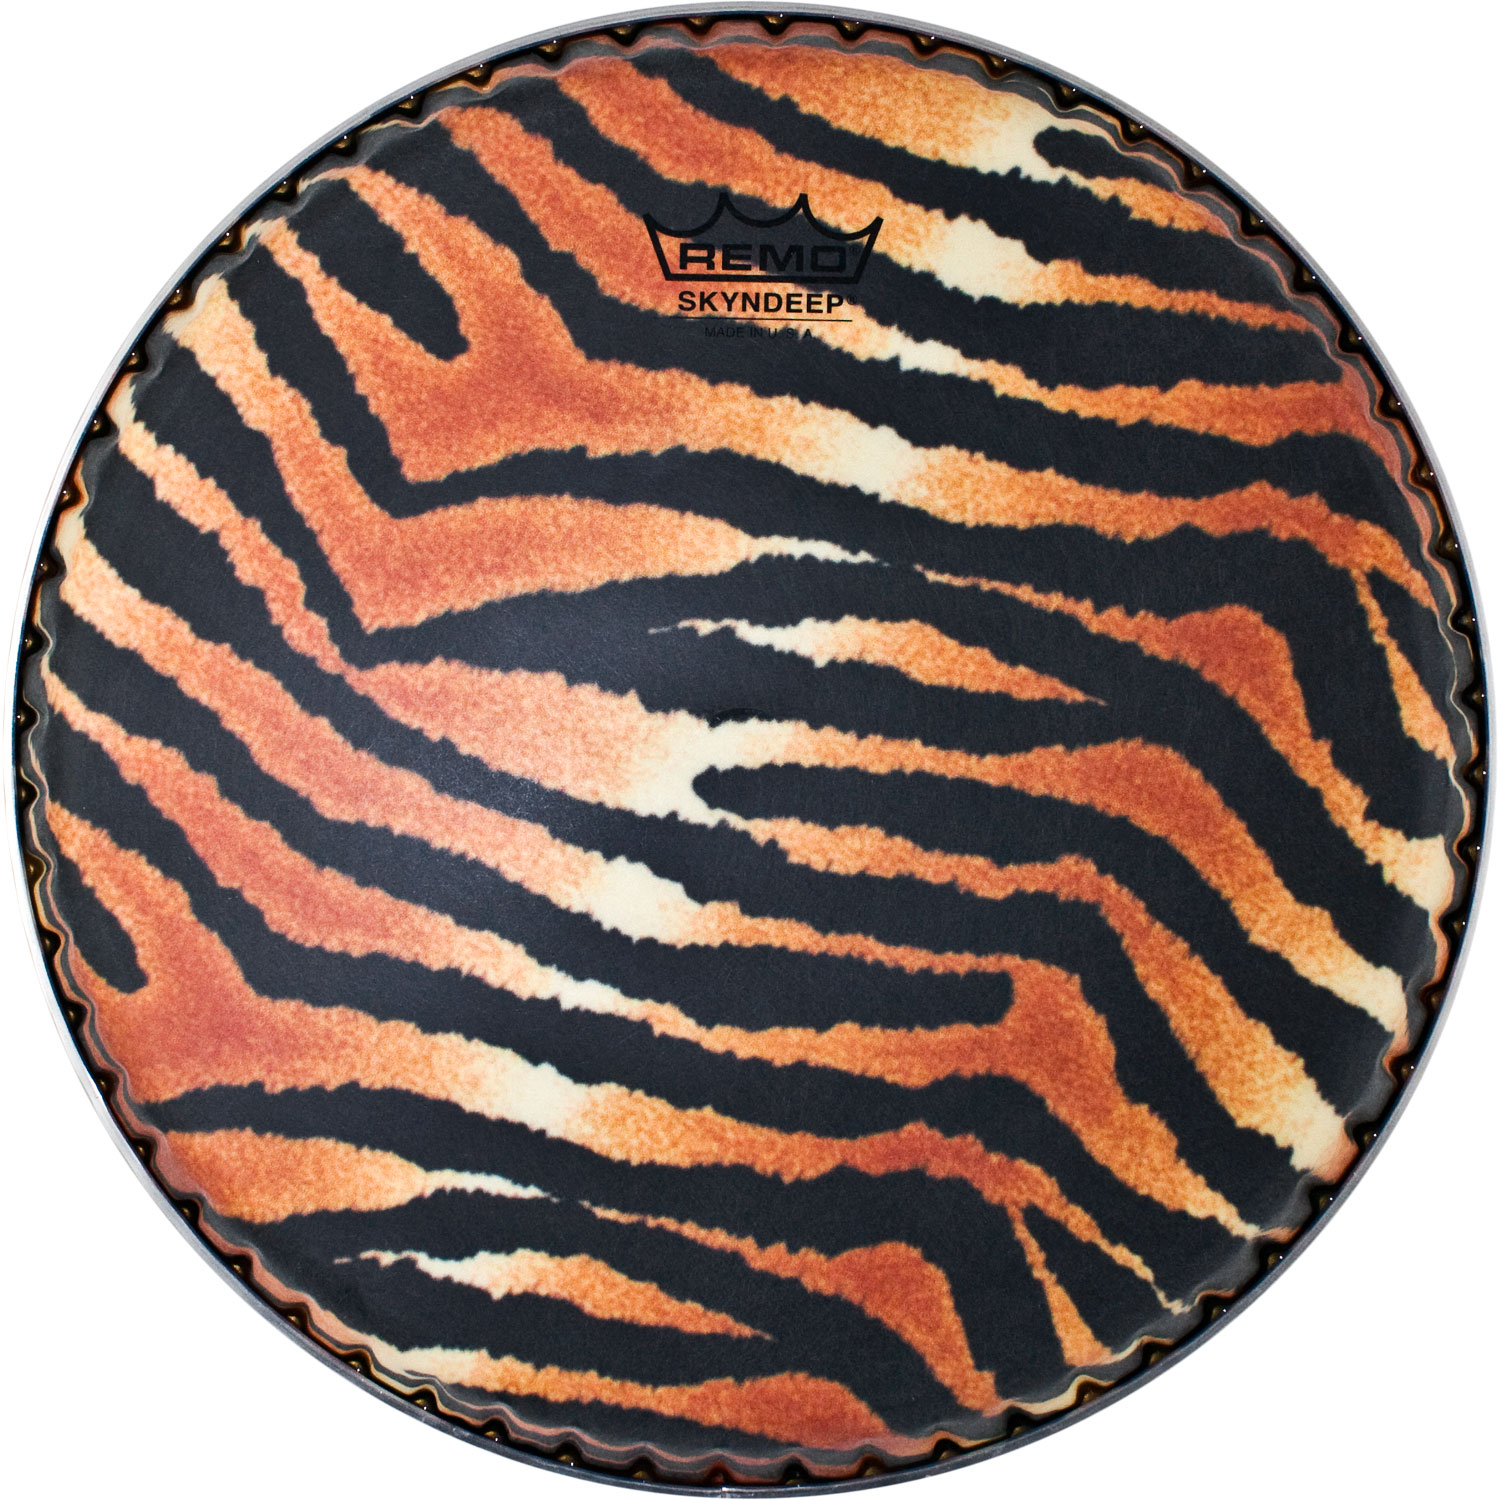 "Remo 11.75"" Symmetry Skyndeep Conga Drum Head (D1 Collar) with Tiger Stripe Graphic"